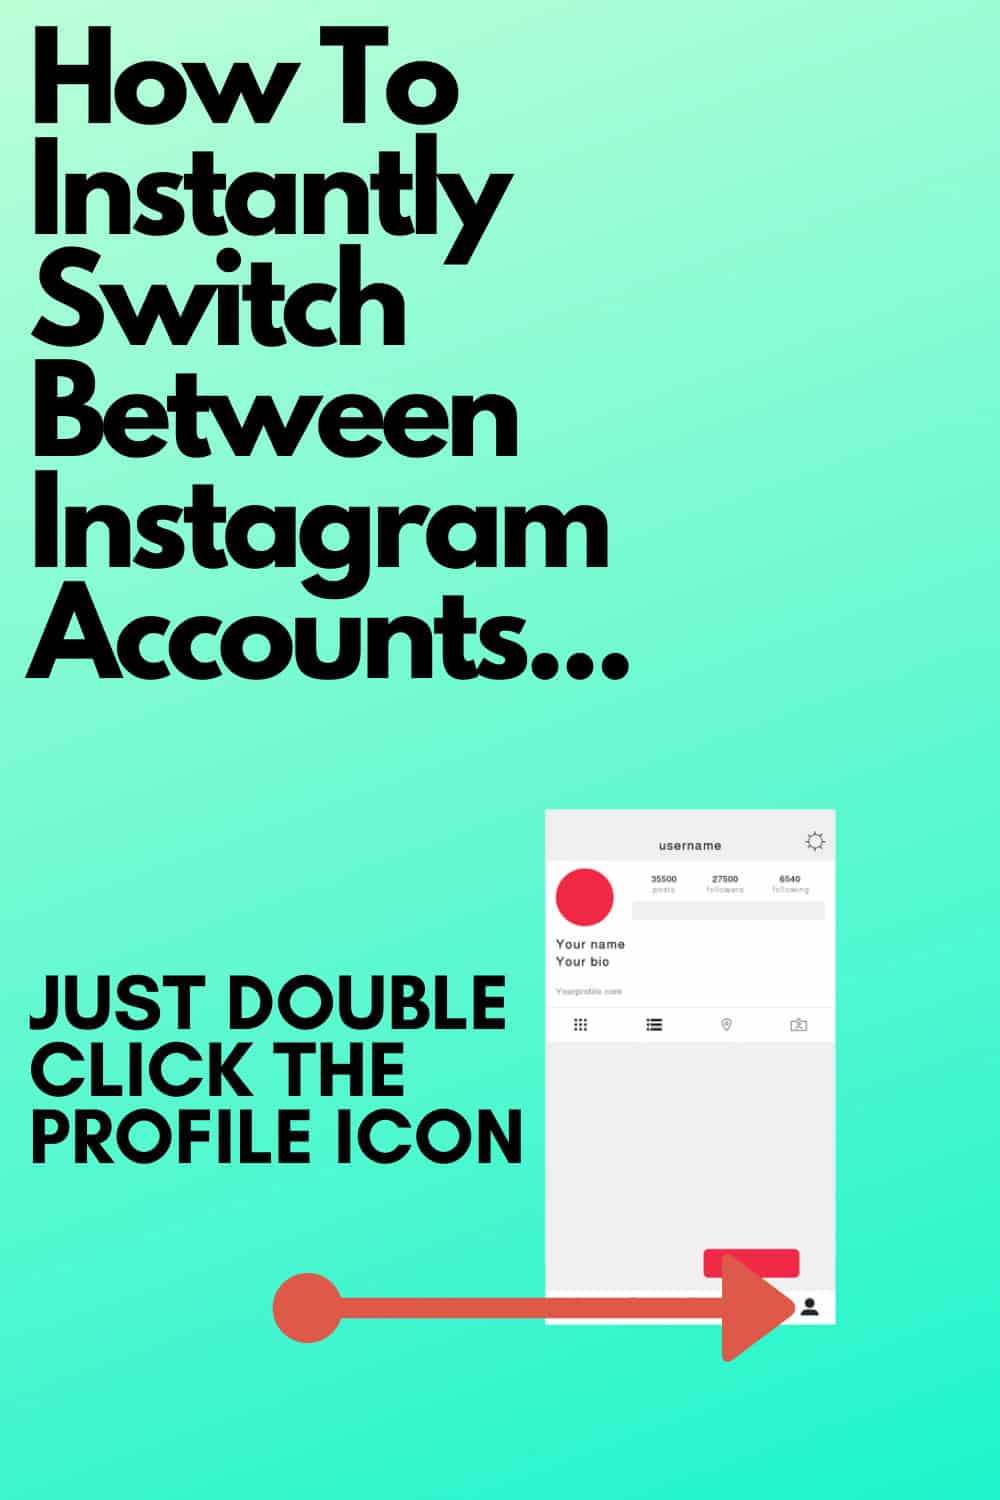 How To Instantly Switch Between Instagram Accounts